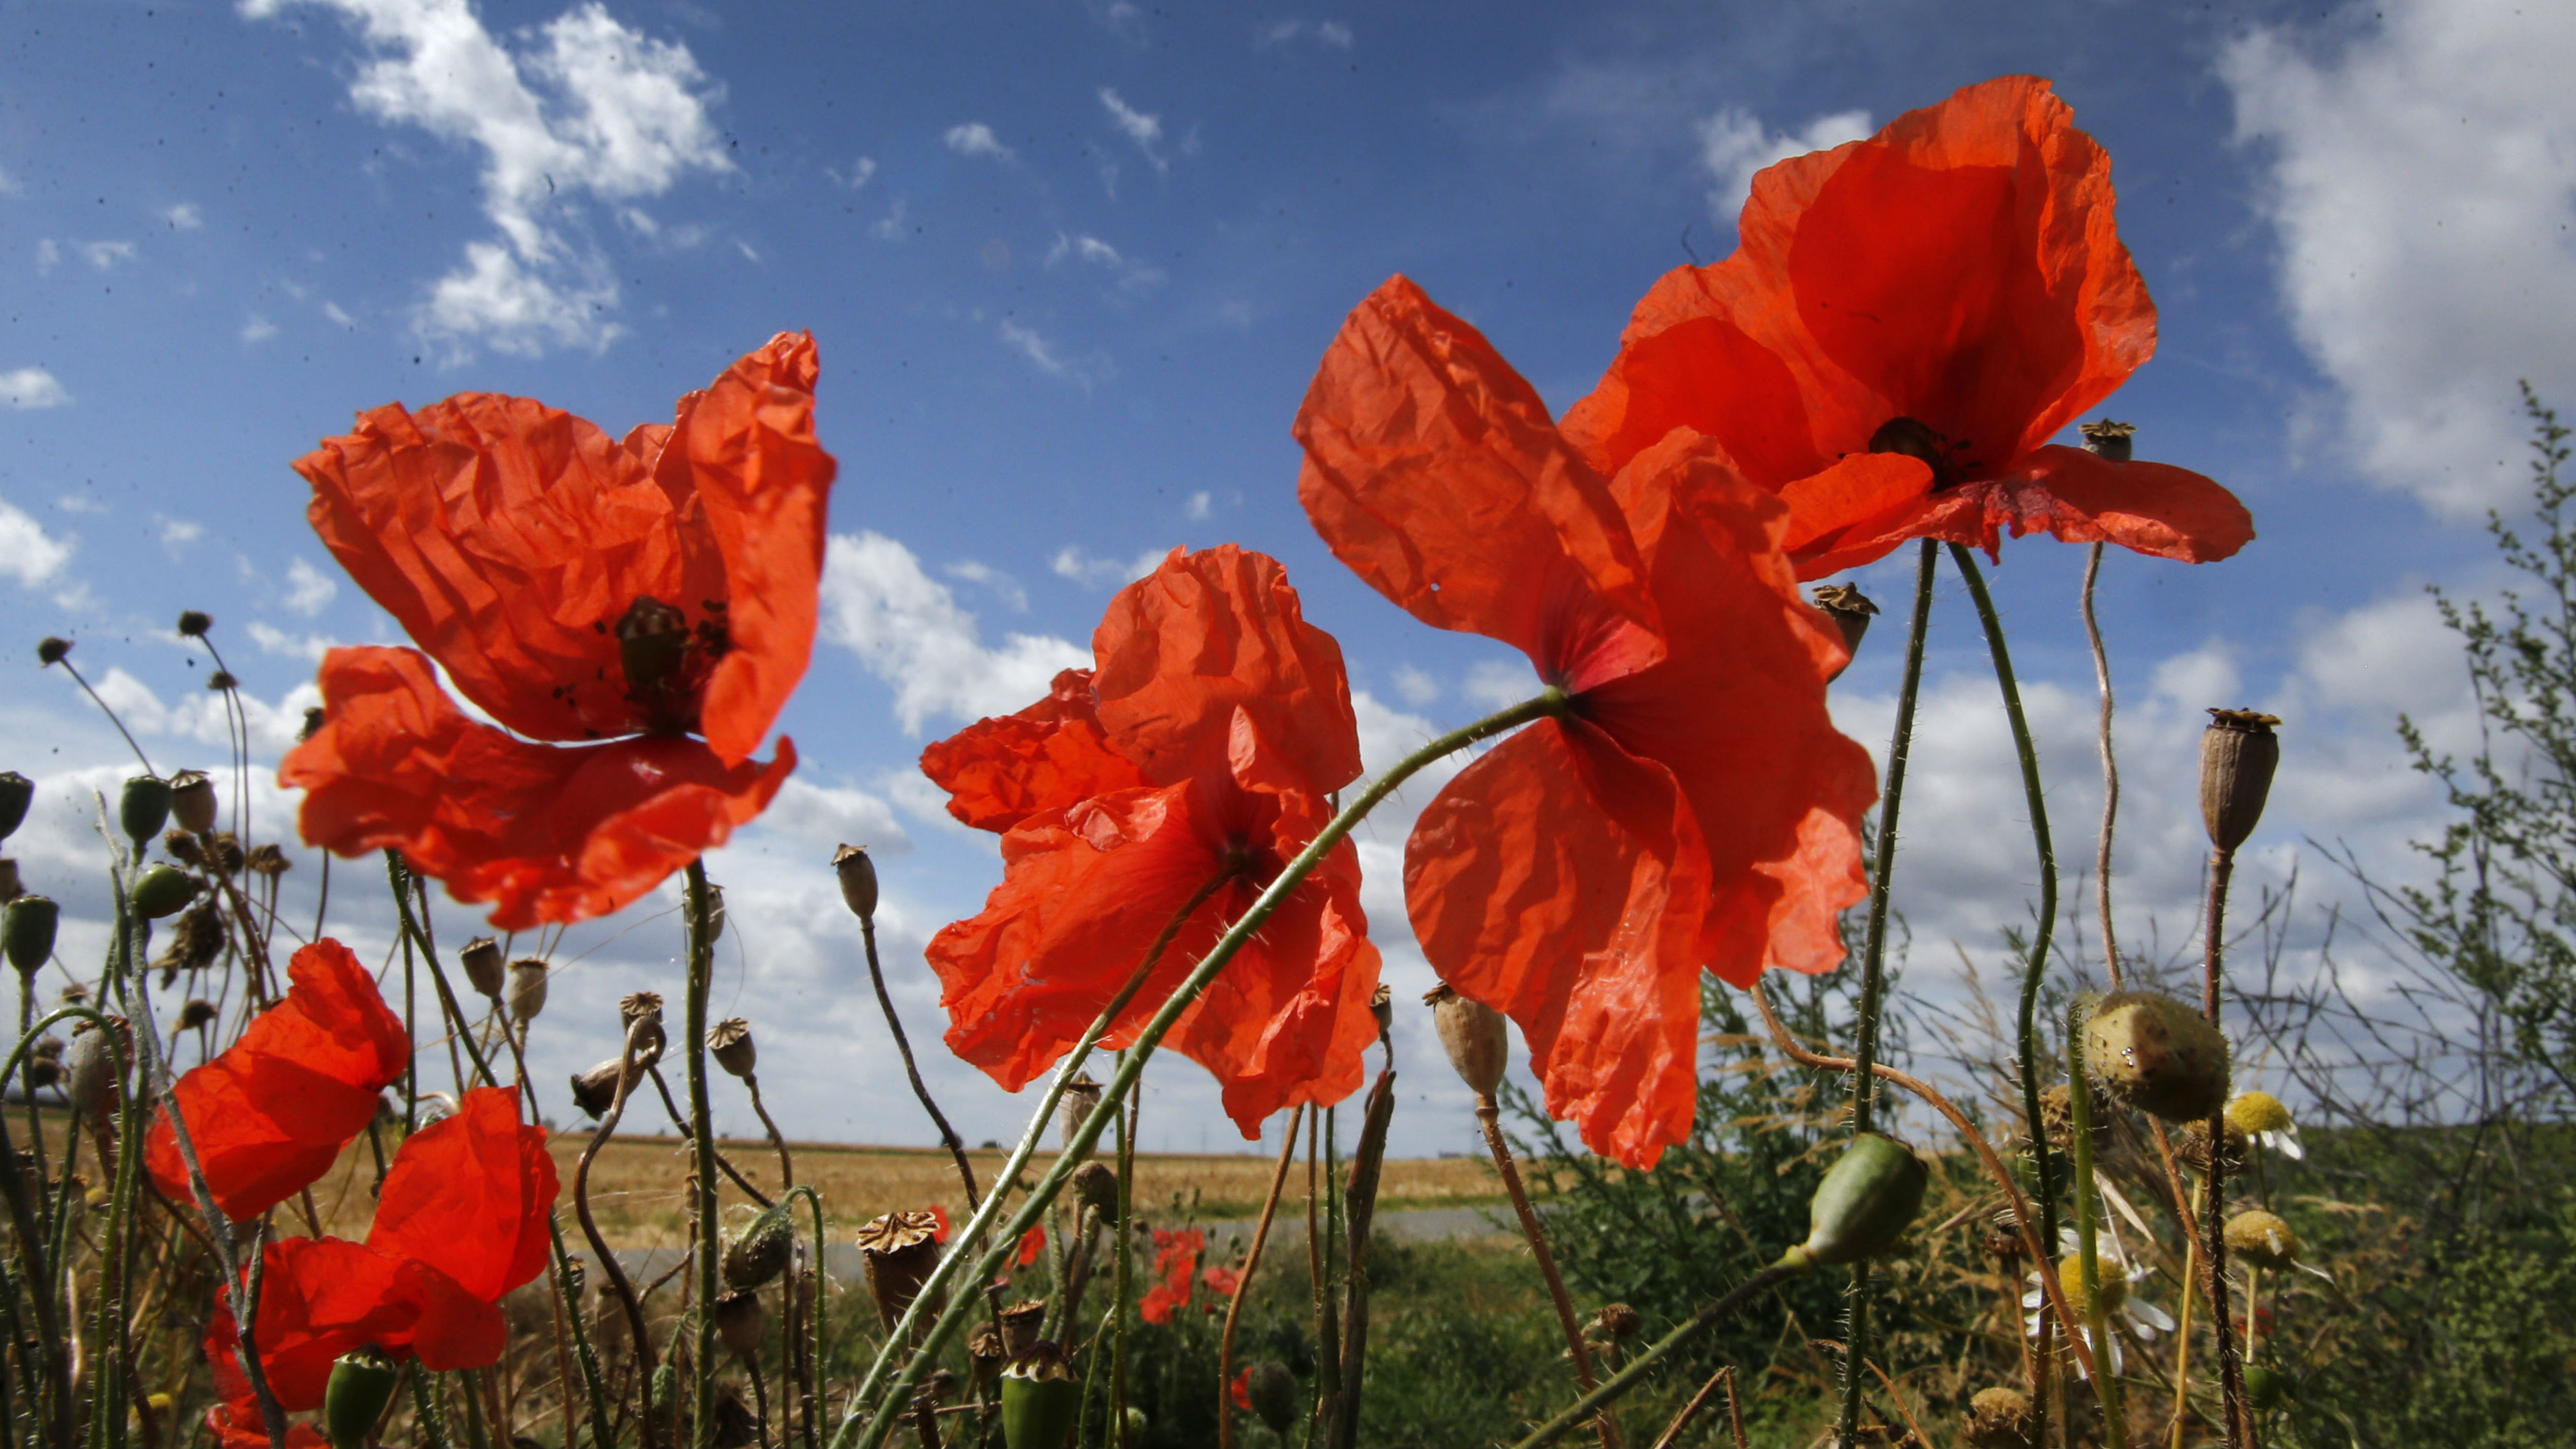 Red poppy blossoms are photographed near Frankfurt, Germany, Tuesday, July 28, 2015. Weather forecasts predict changeable weather for Germany during the next few days.